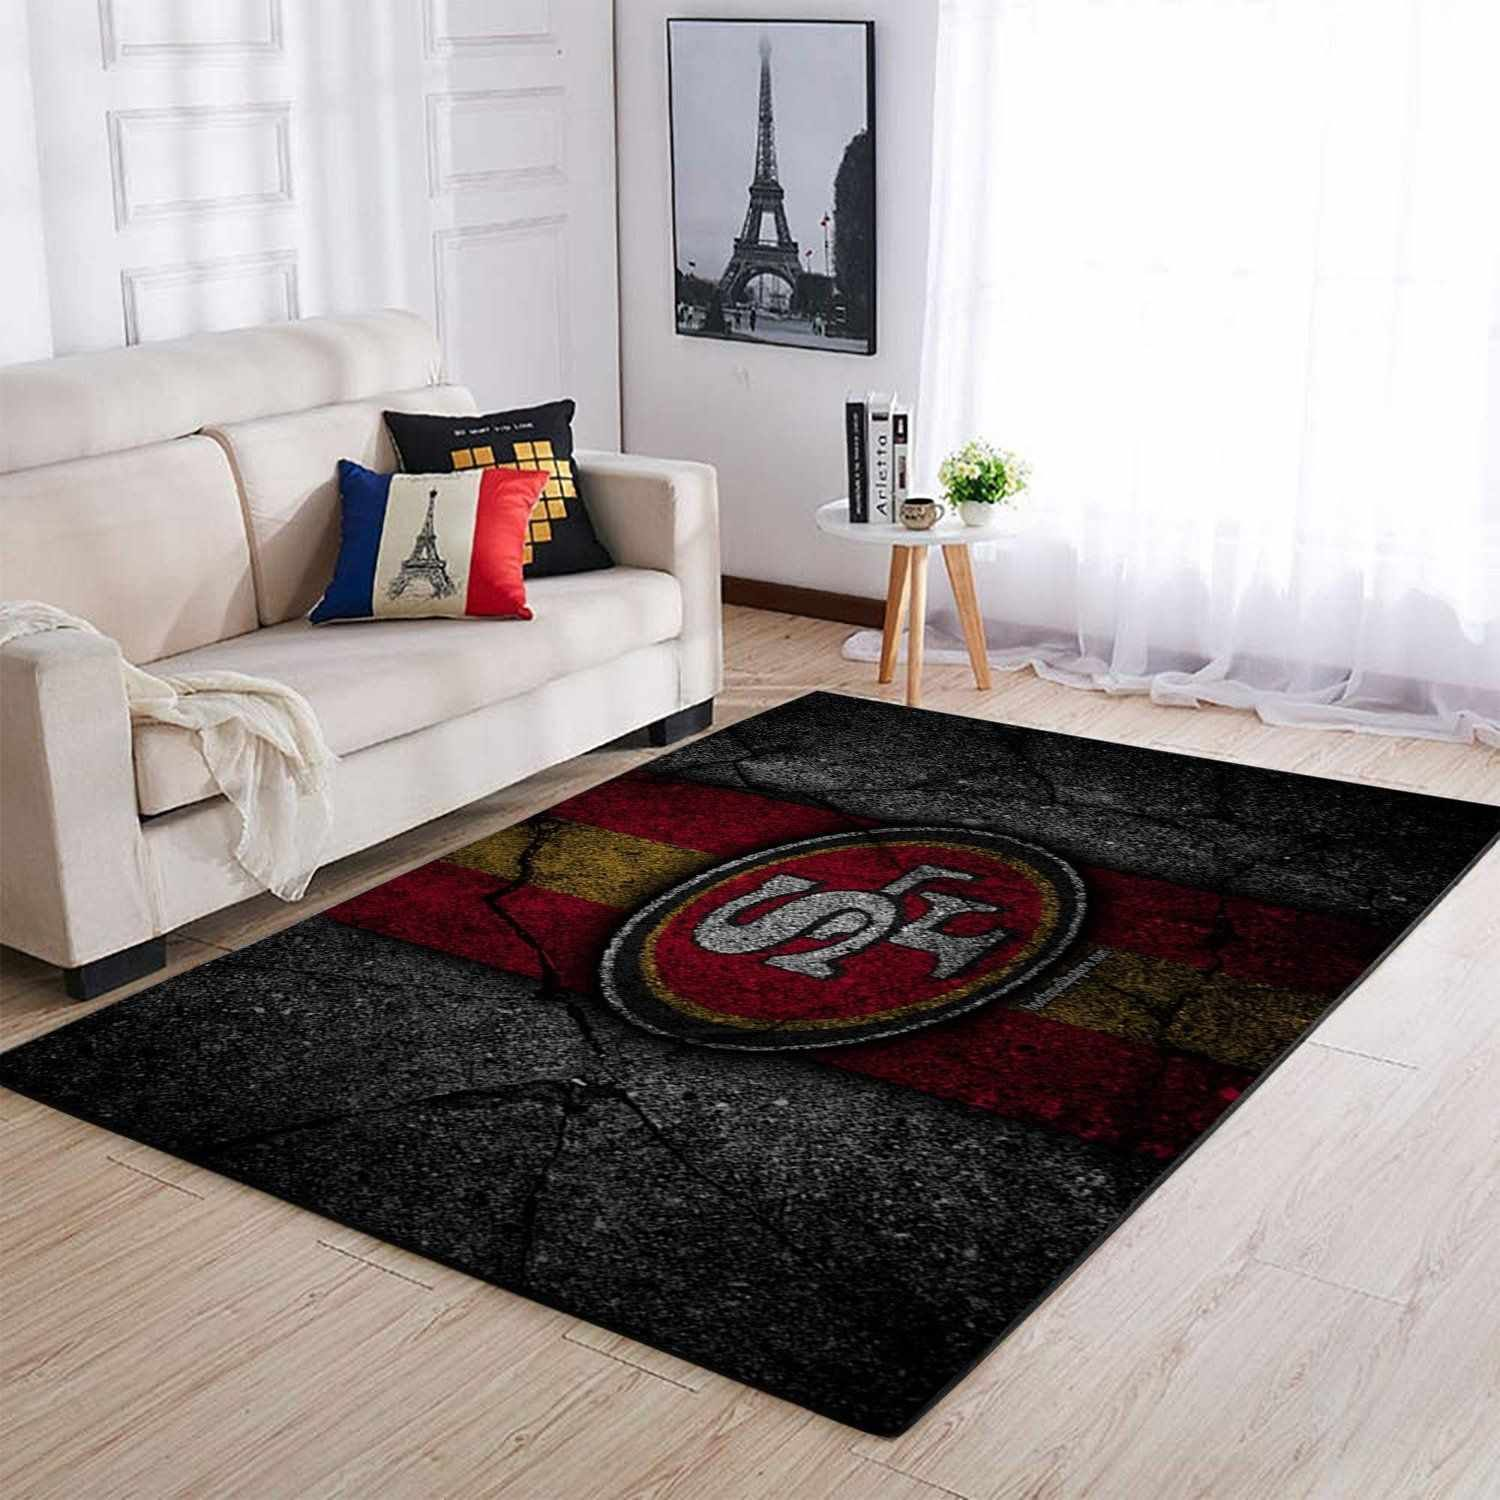 San Francisco 49ers Area Amazon Best Seller Sku 2849 Rug Floor Decor Rugs In Living Room Living Room Carpet